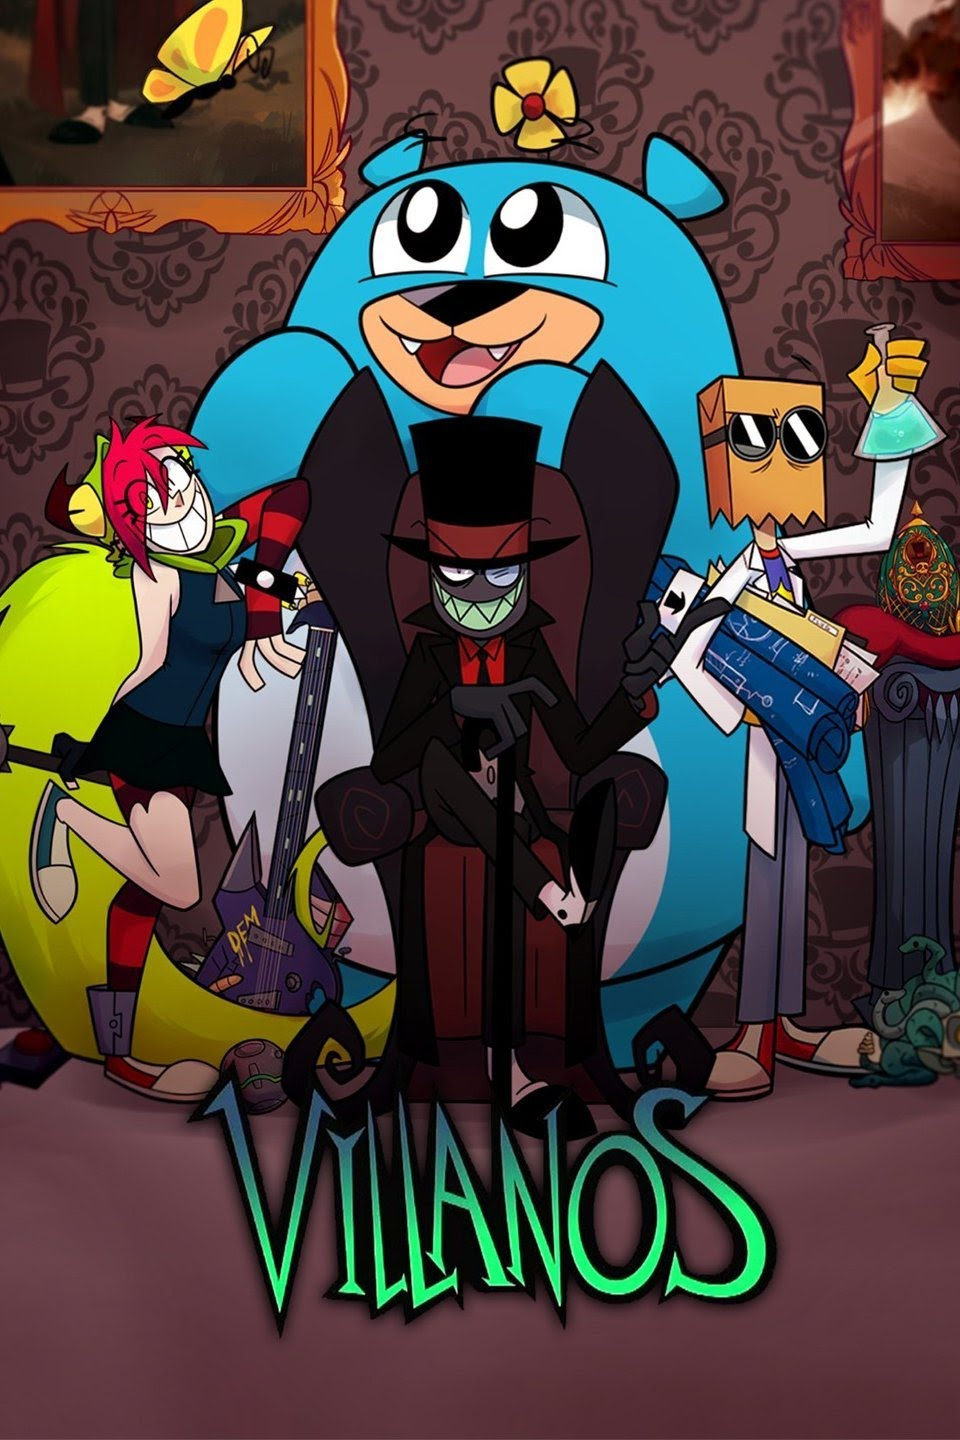 Villanos Doblaje Wiki Fandom Powered By Wikia